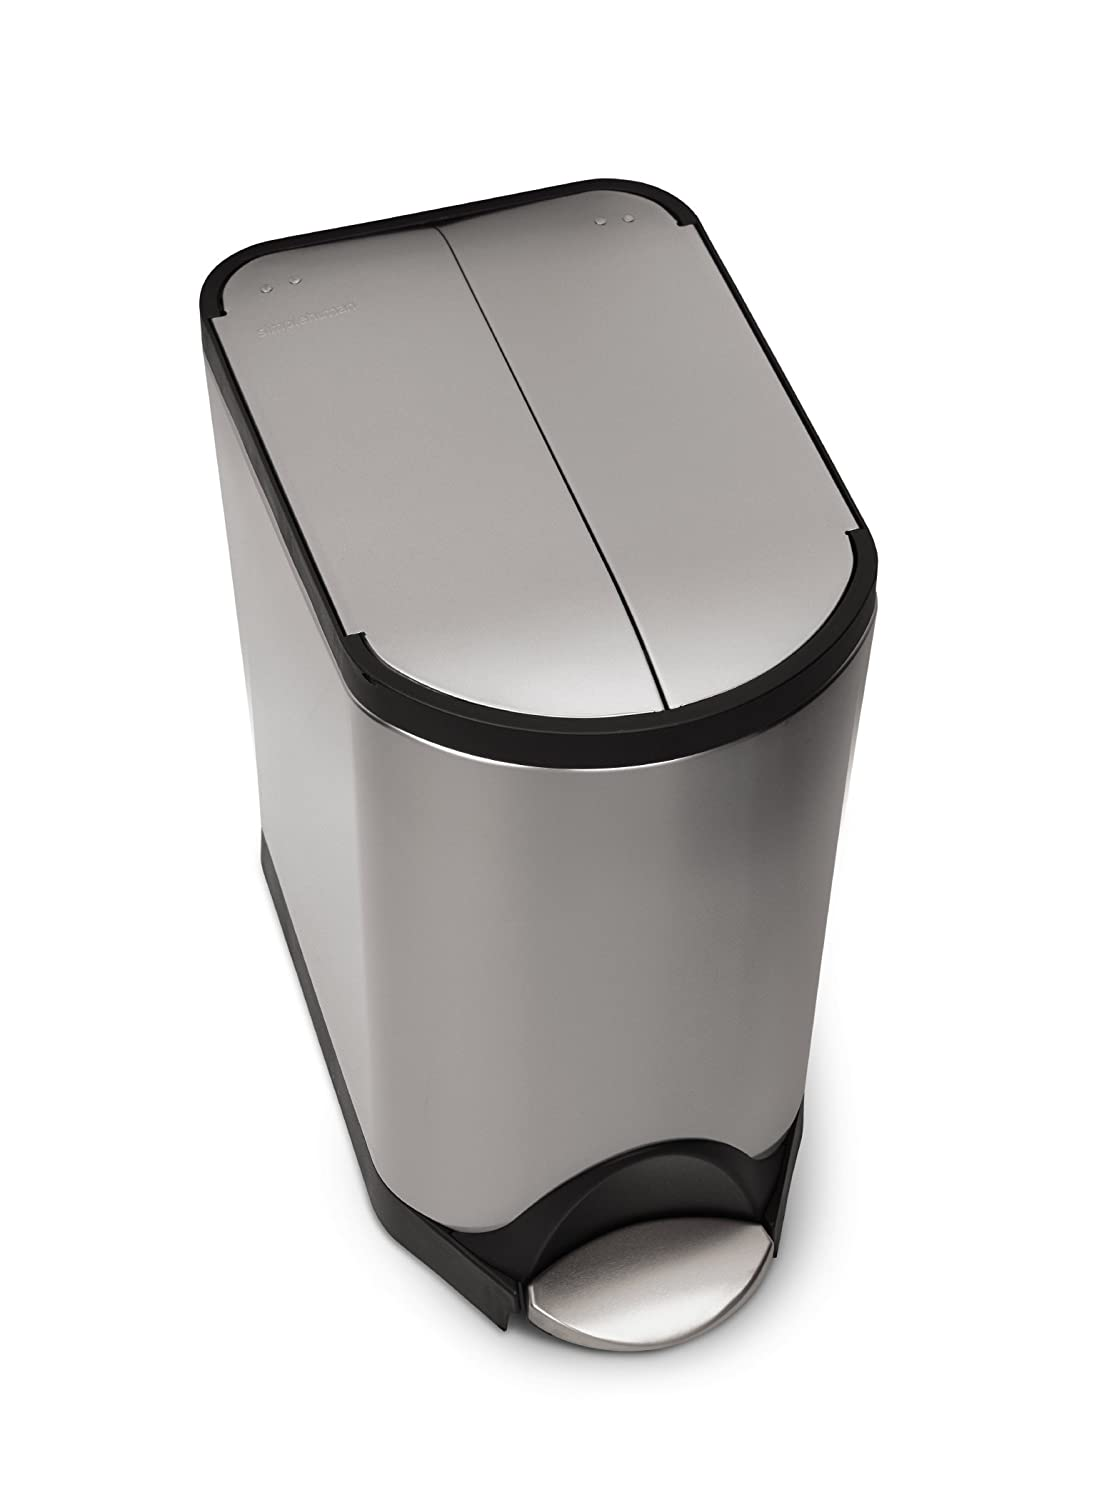 Amazon.com: Simplehuman Butterfly Step Trash Can, Stainless Steel, 20 L /  5.3 Gal: Home U0026 Kitchen